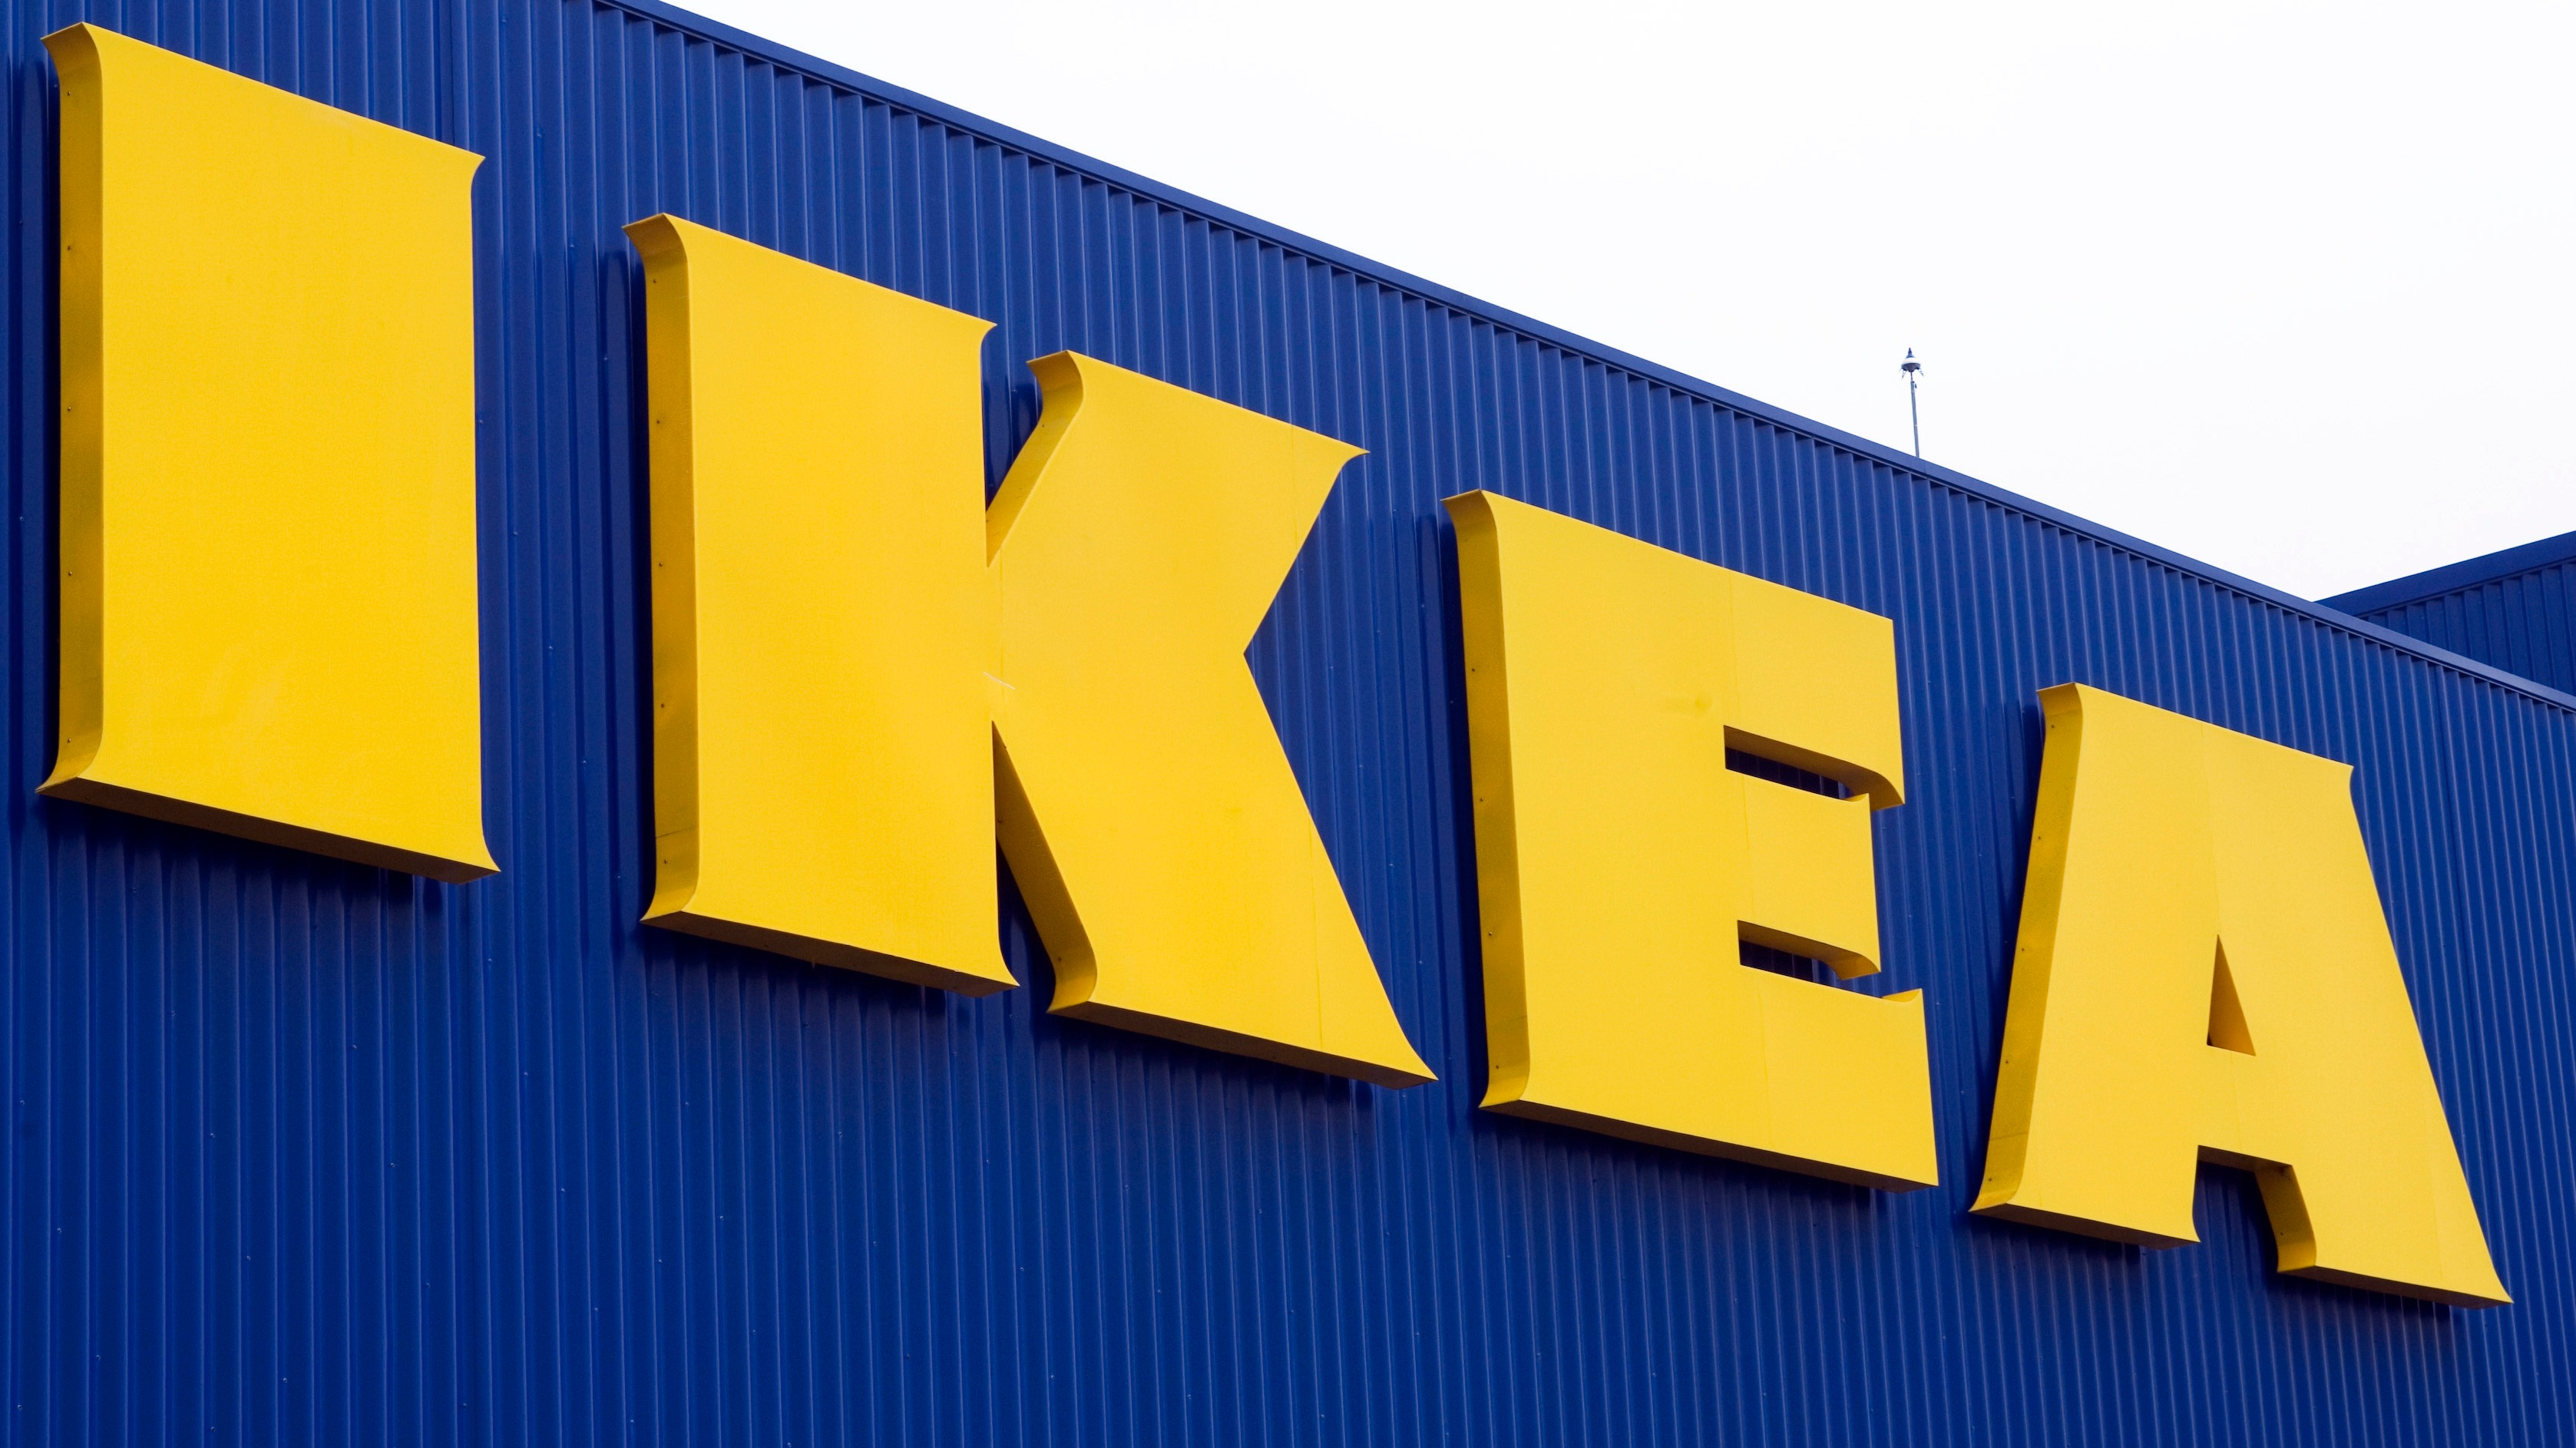 Ikea issue safety alert after two children killed by Ikea security jobs